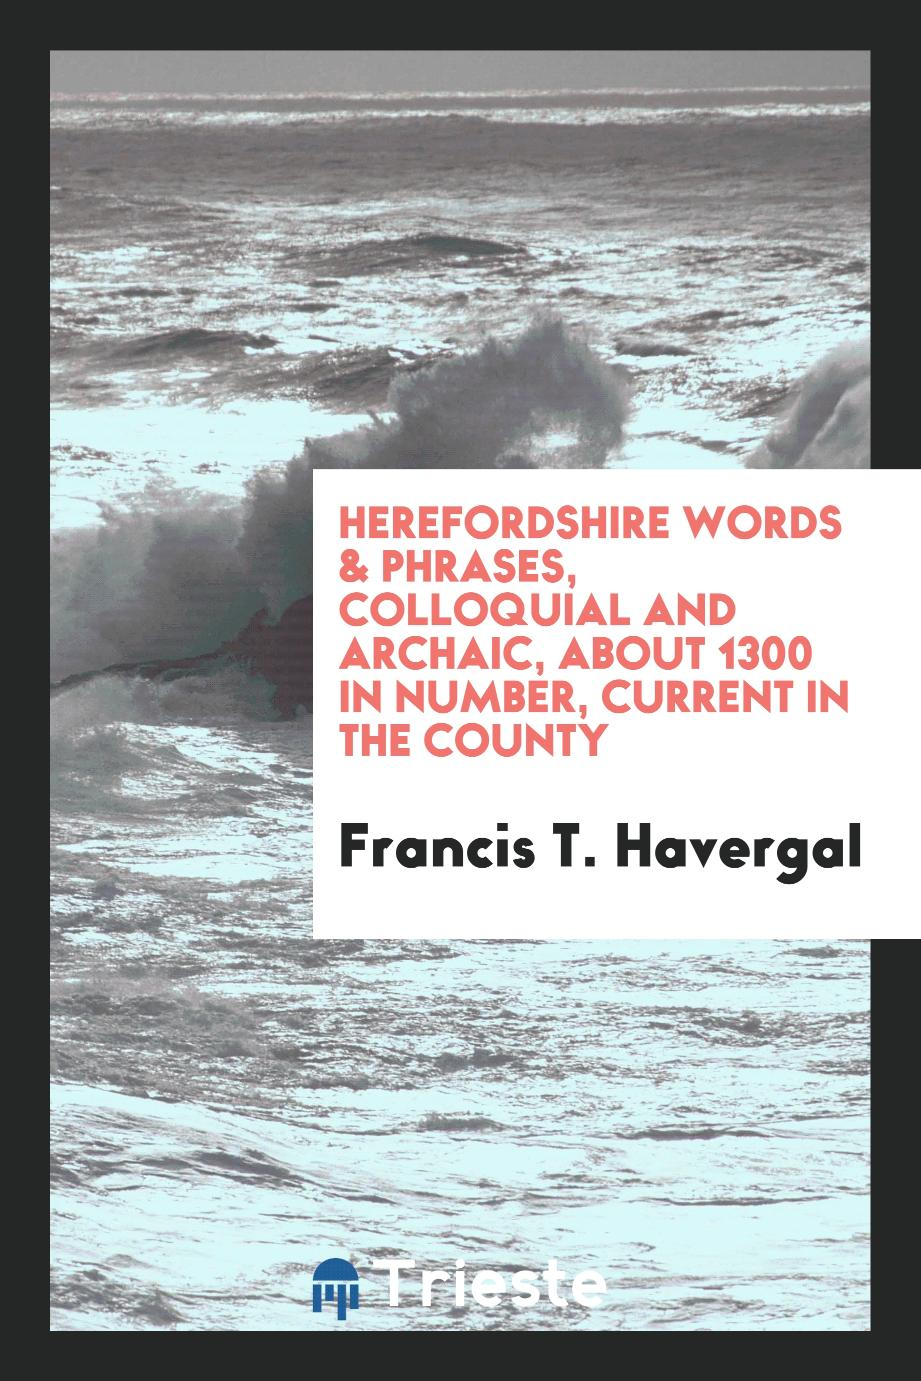 Herefordshire Words & Phrases, Colloquial and Archaic, about 1300 in Number, Current in the County